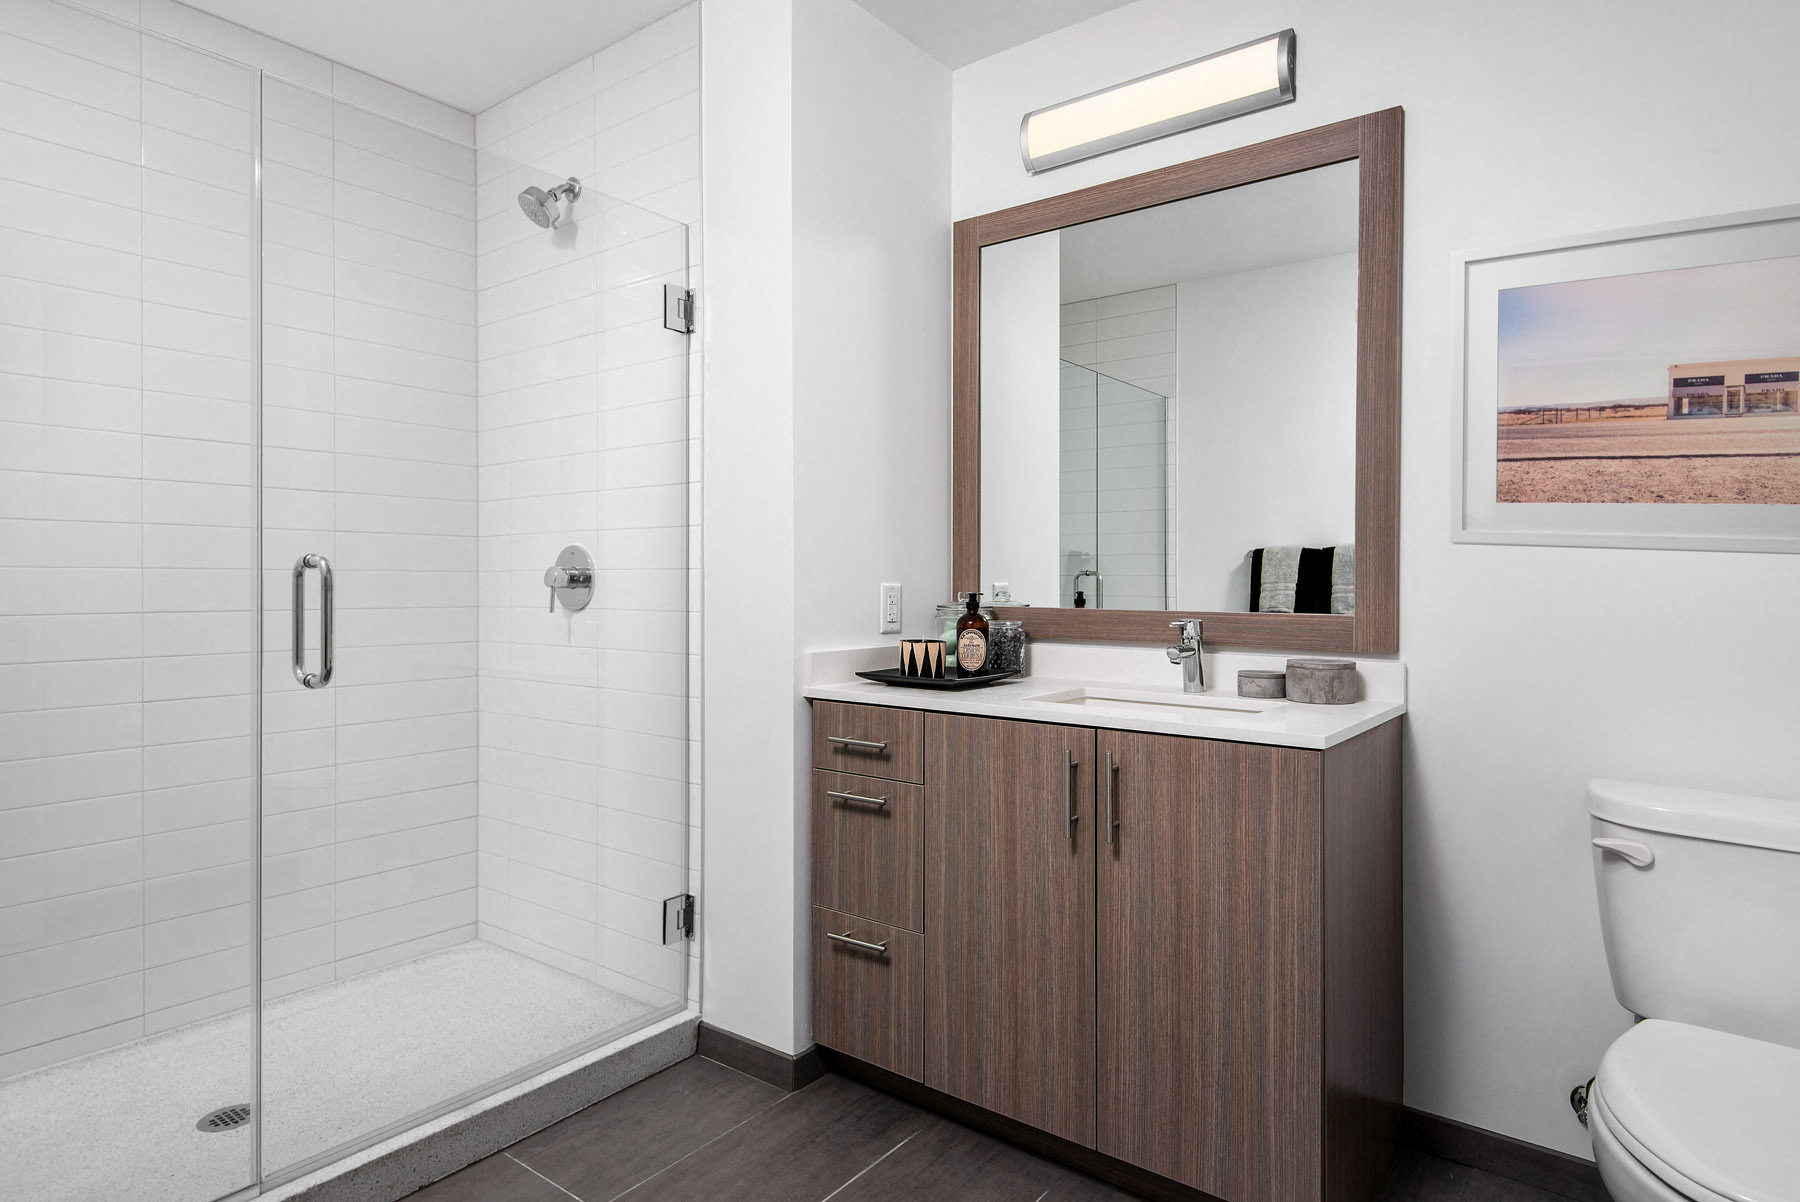 Modern upgraded bathroom with walk-in shower at Eleven40, Chicago, Illinois